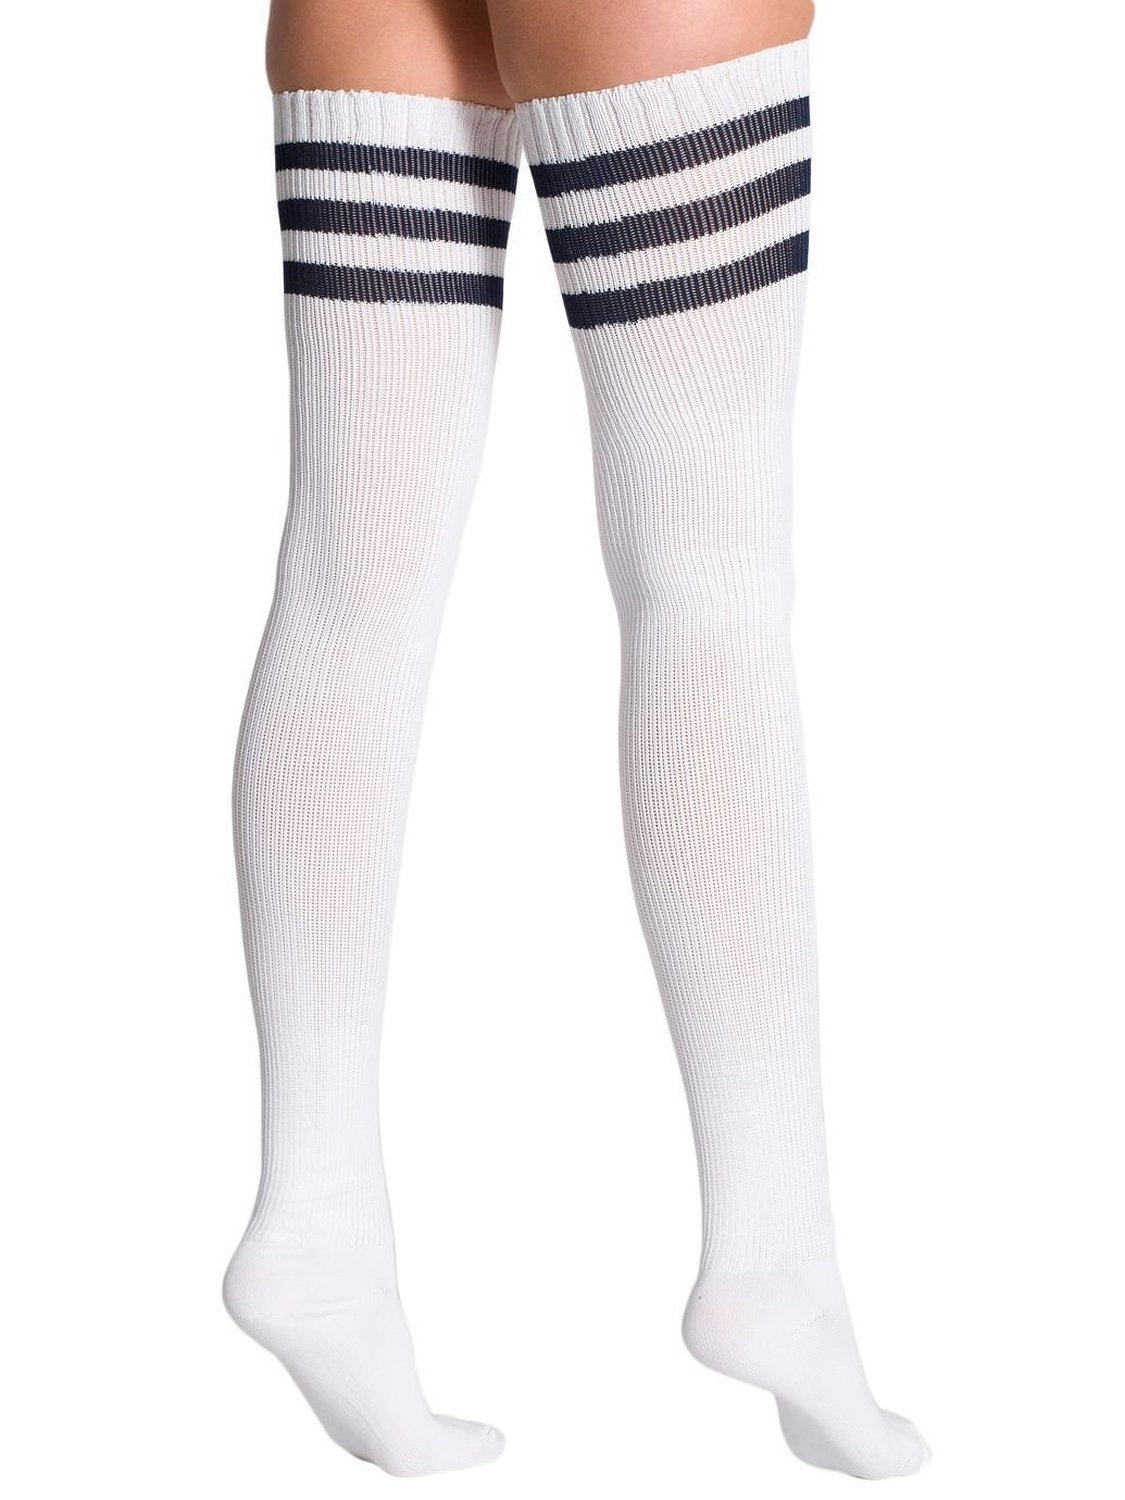 6ec0337100f American Apparel Stripe Thigh-High Sock One Size